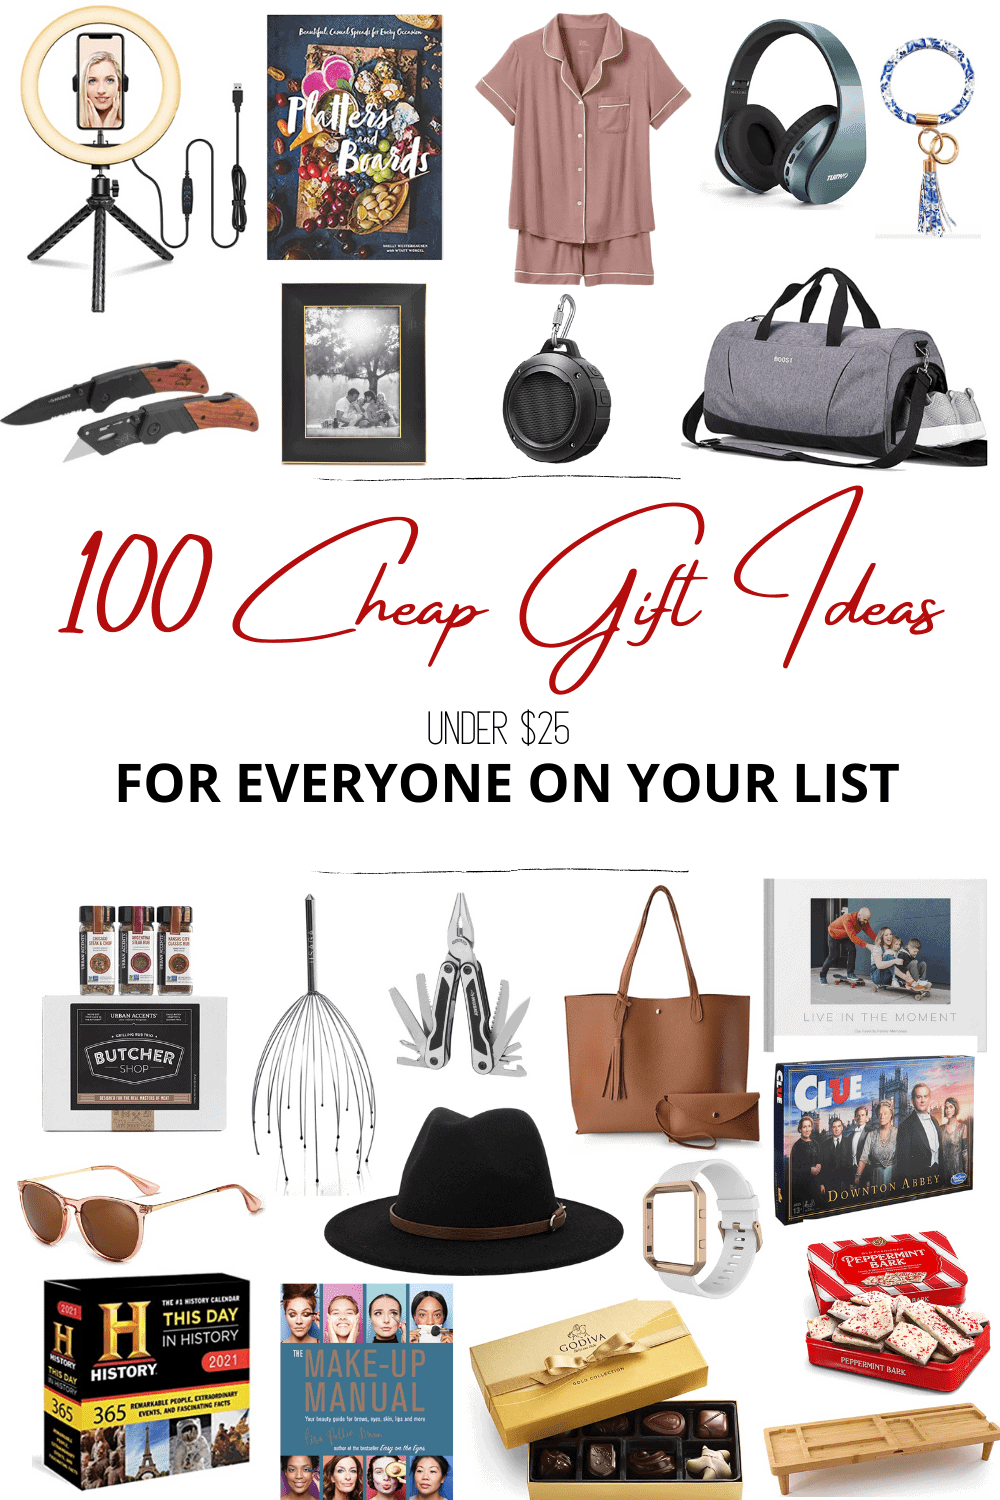 100 Cheap Gift Ideas for Christmas